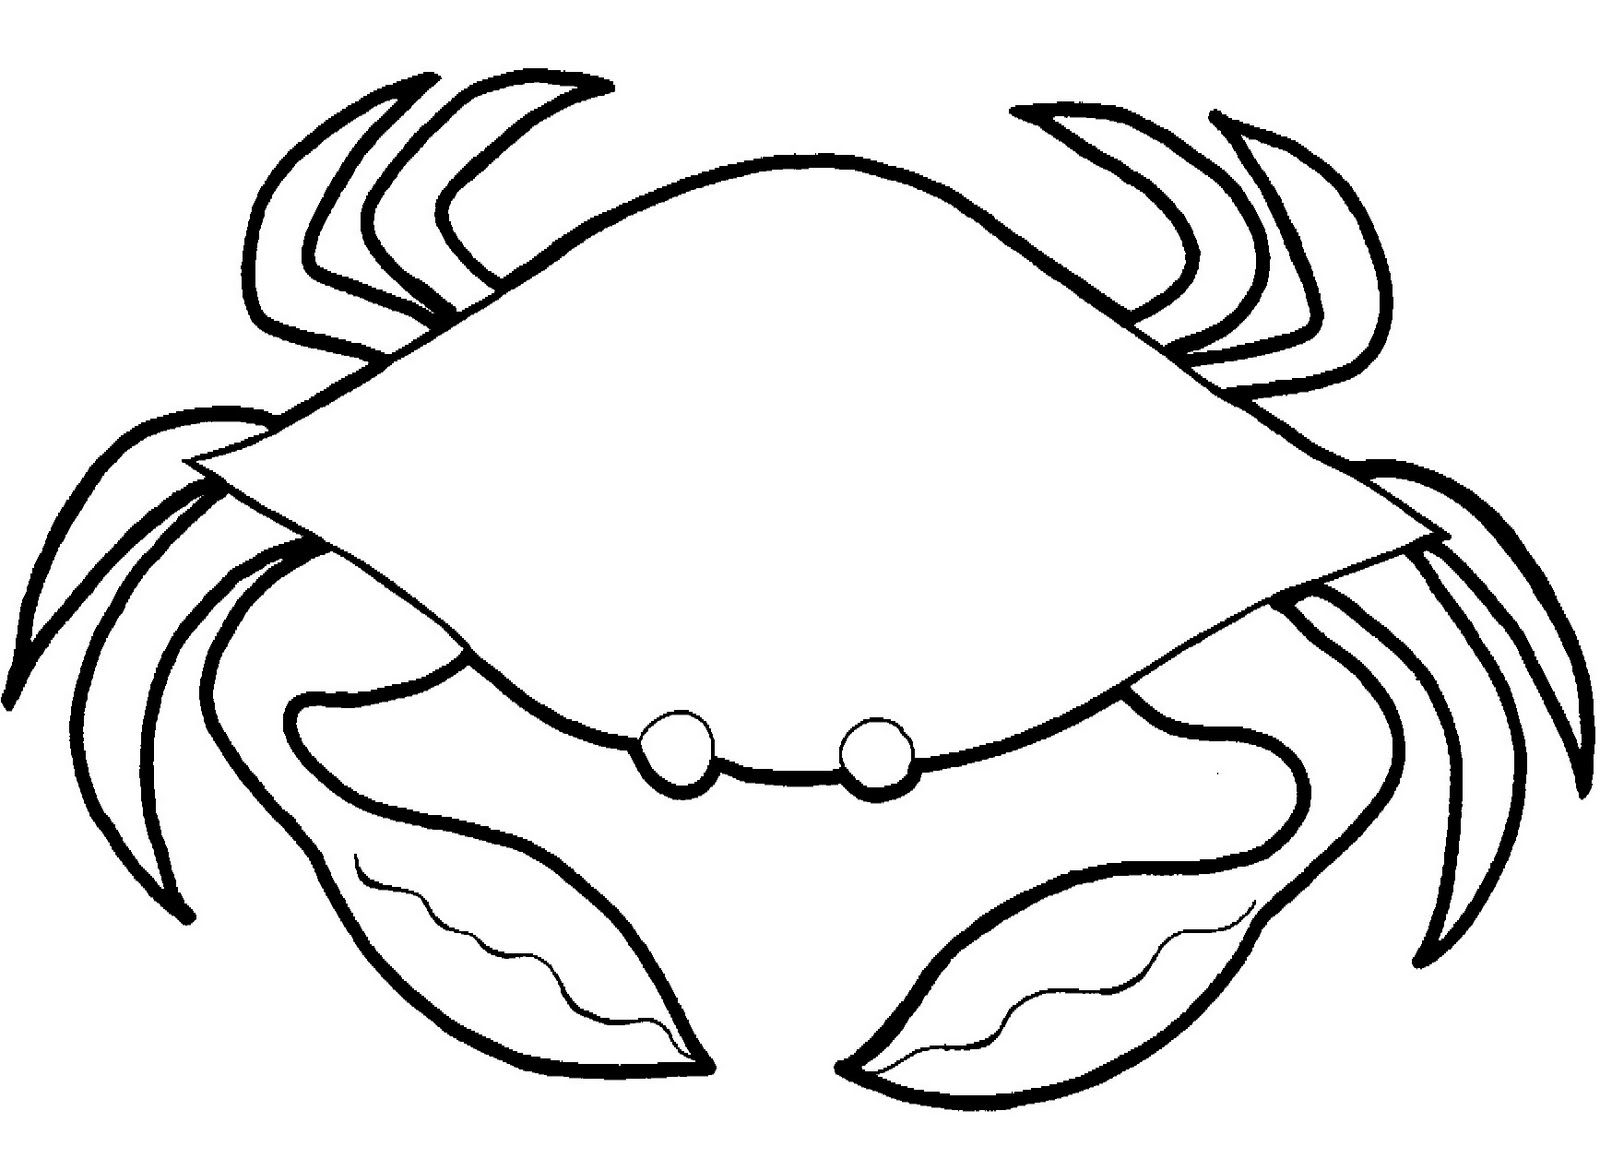 bed pattern coloring pages - photo#1